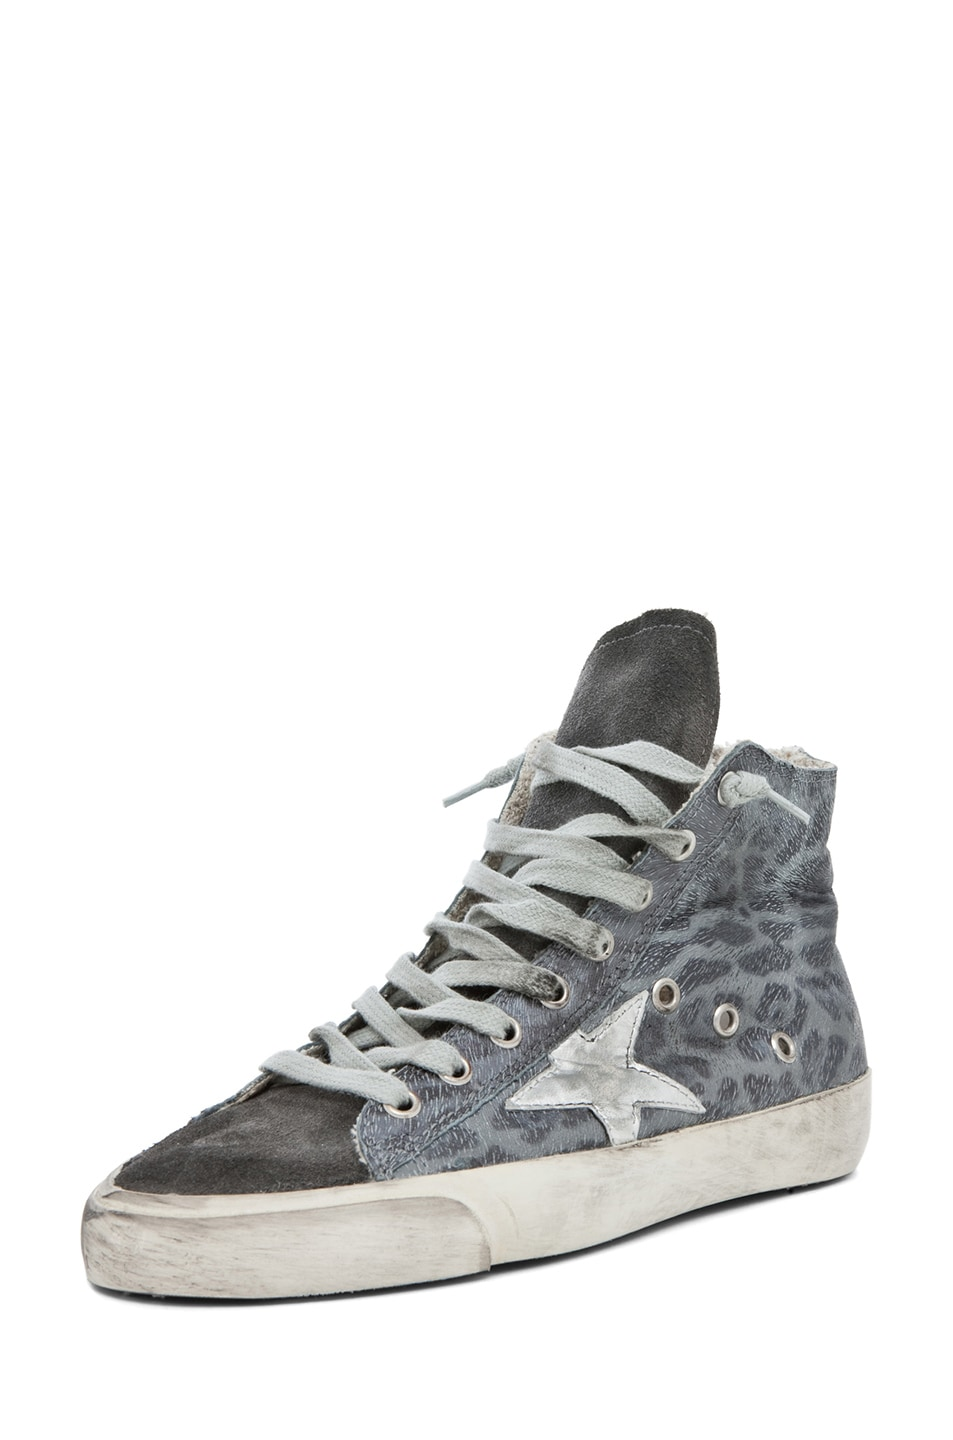 Image 2 of Golden Goose Francy Leopard High Top Sneaker in Silver